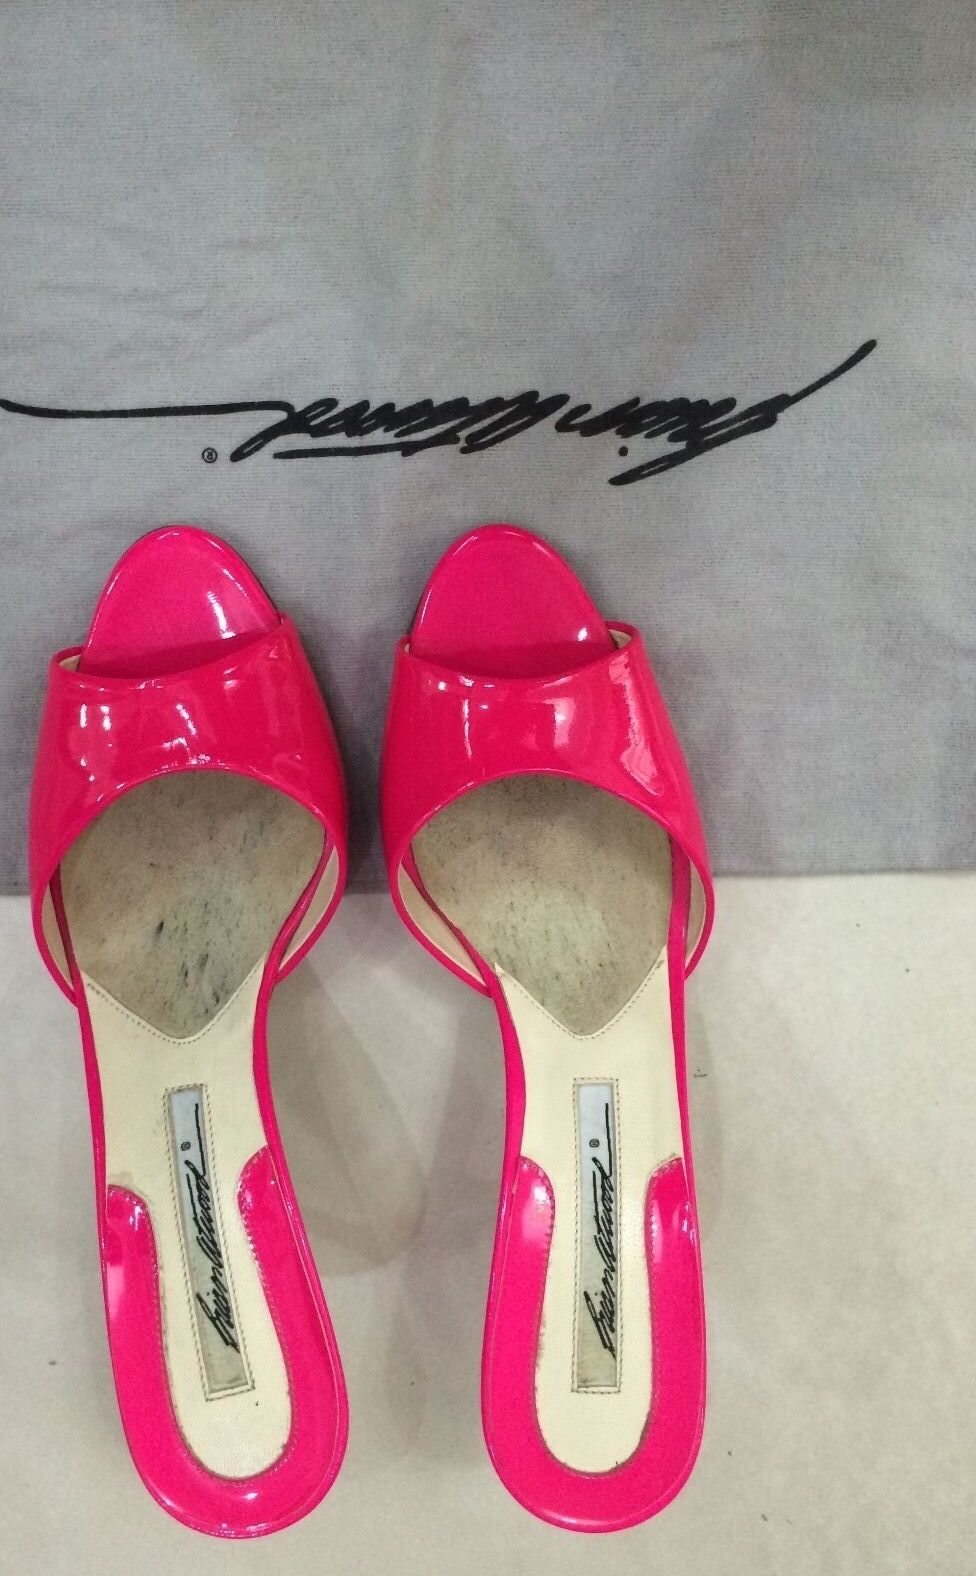 BRIAN BRIAN BRIAN ATWOOD HOT PINK PATENT LEATHER MULES SIZE 6.5 (VERY GOOD CONDITION) f5af84